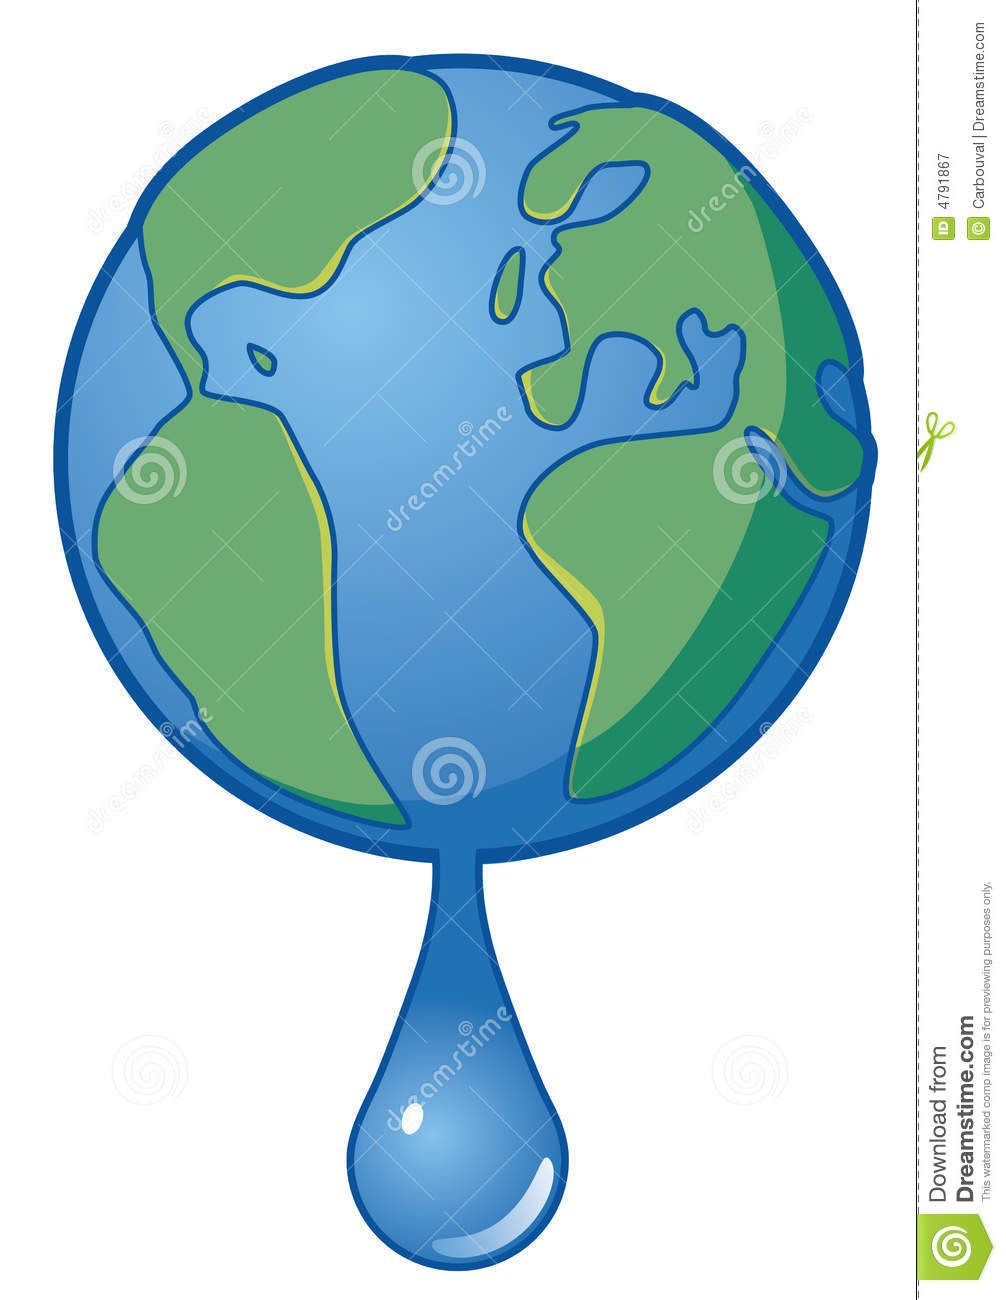 Earth water stock vector. Image of ocean, water, pollute ...